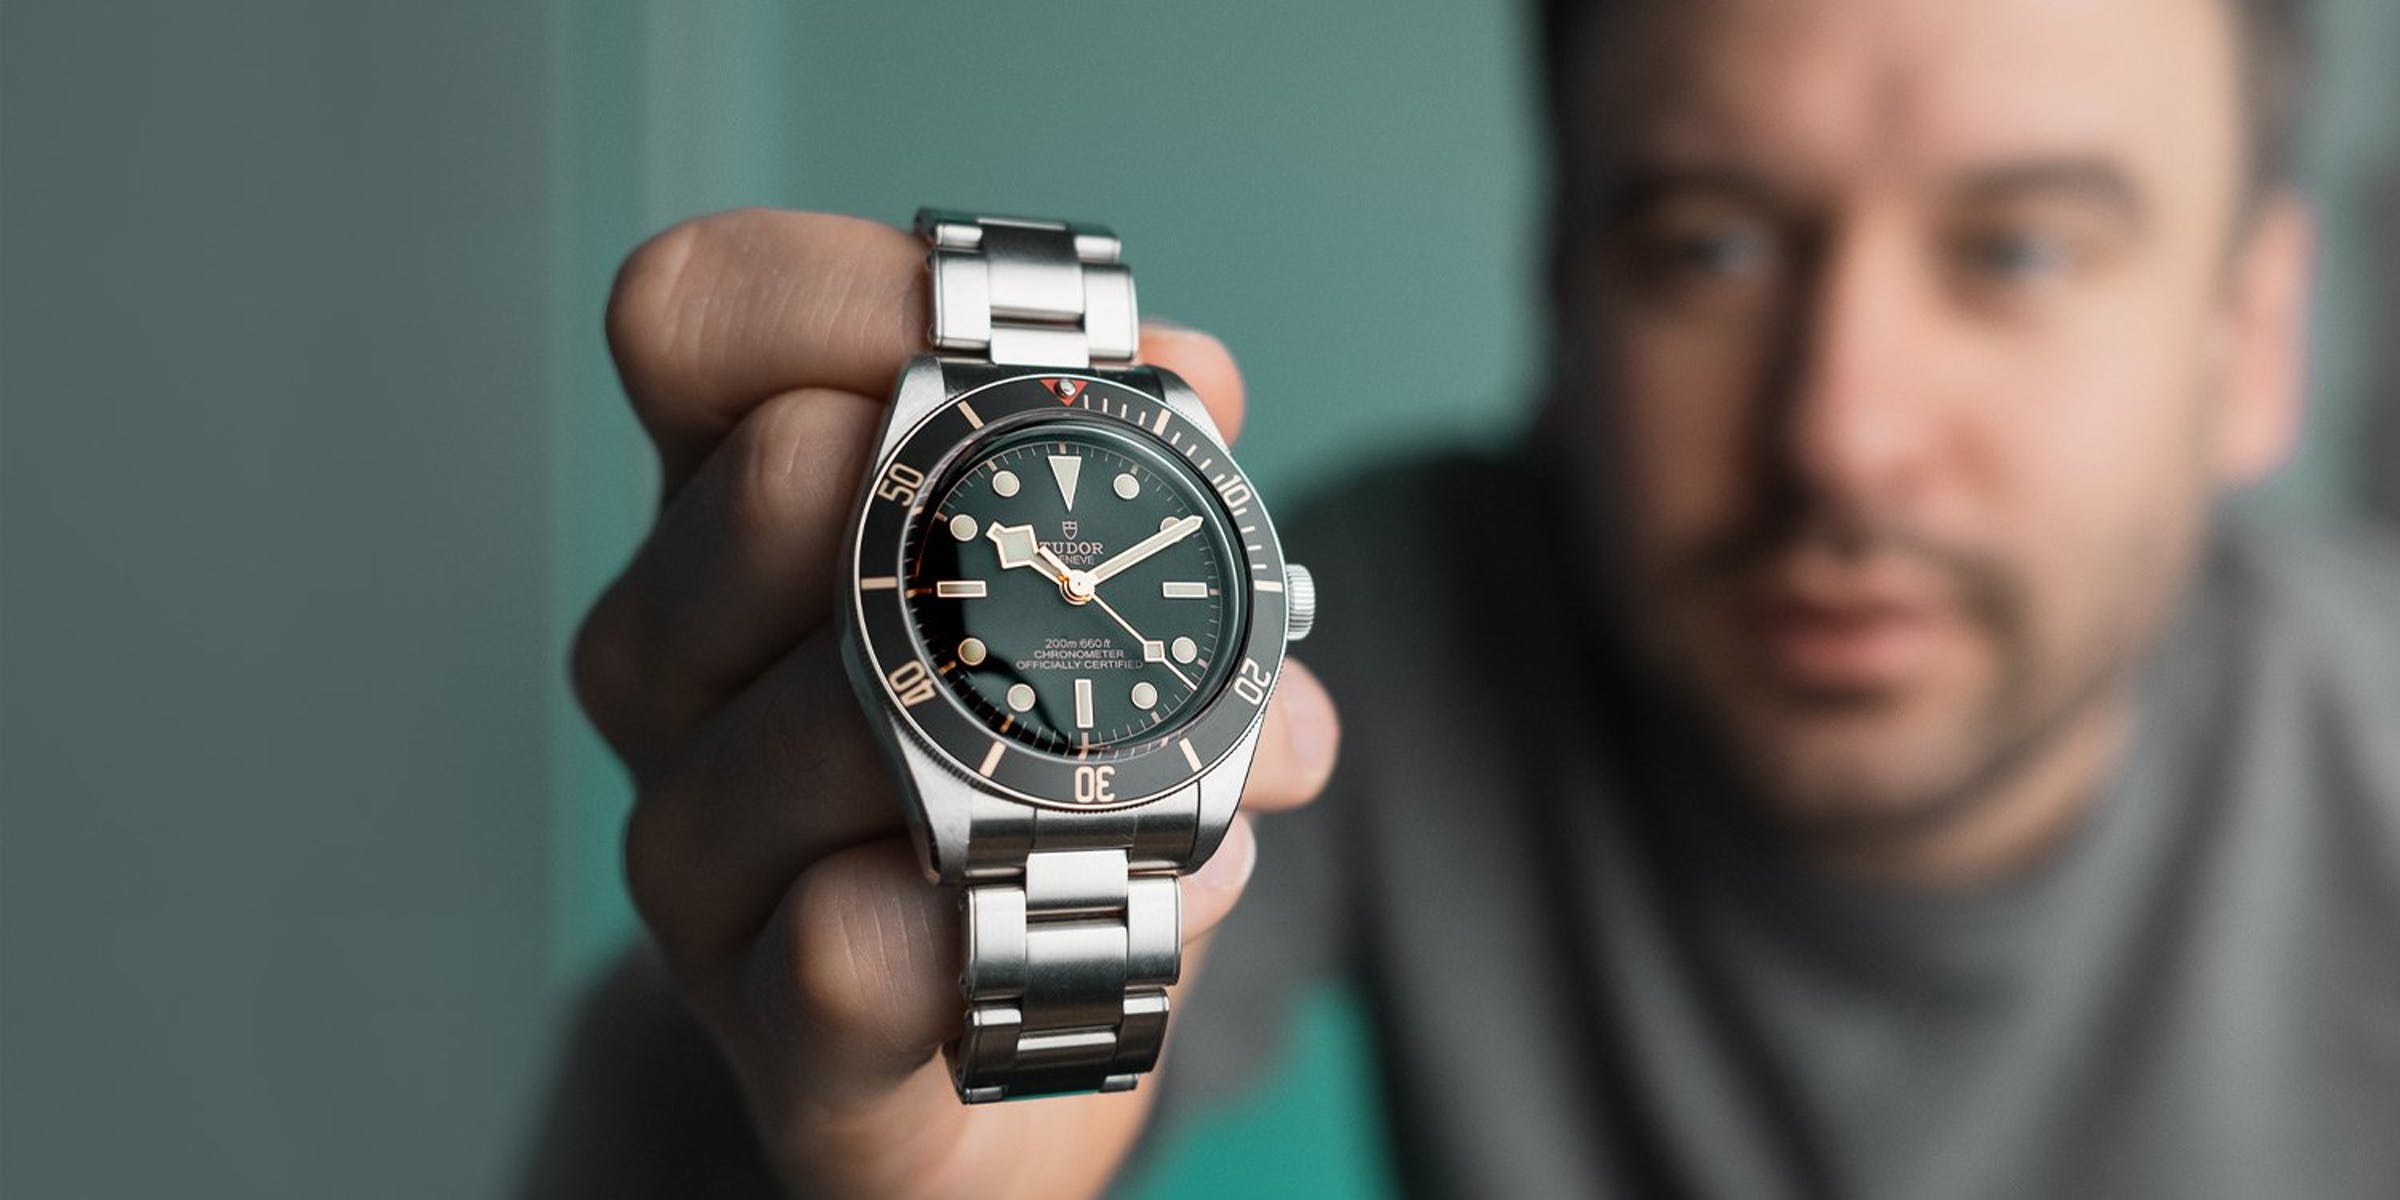 5 Categories, 1 Budget: How to Find the Perfect Watch Under $4,000